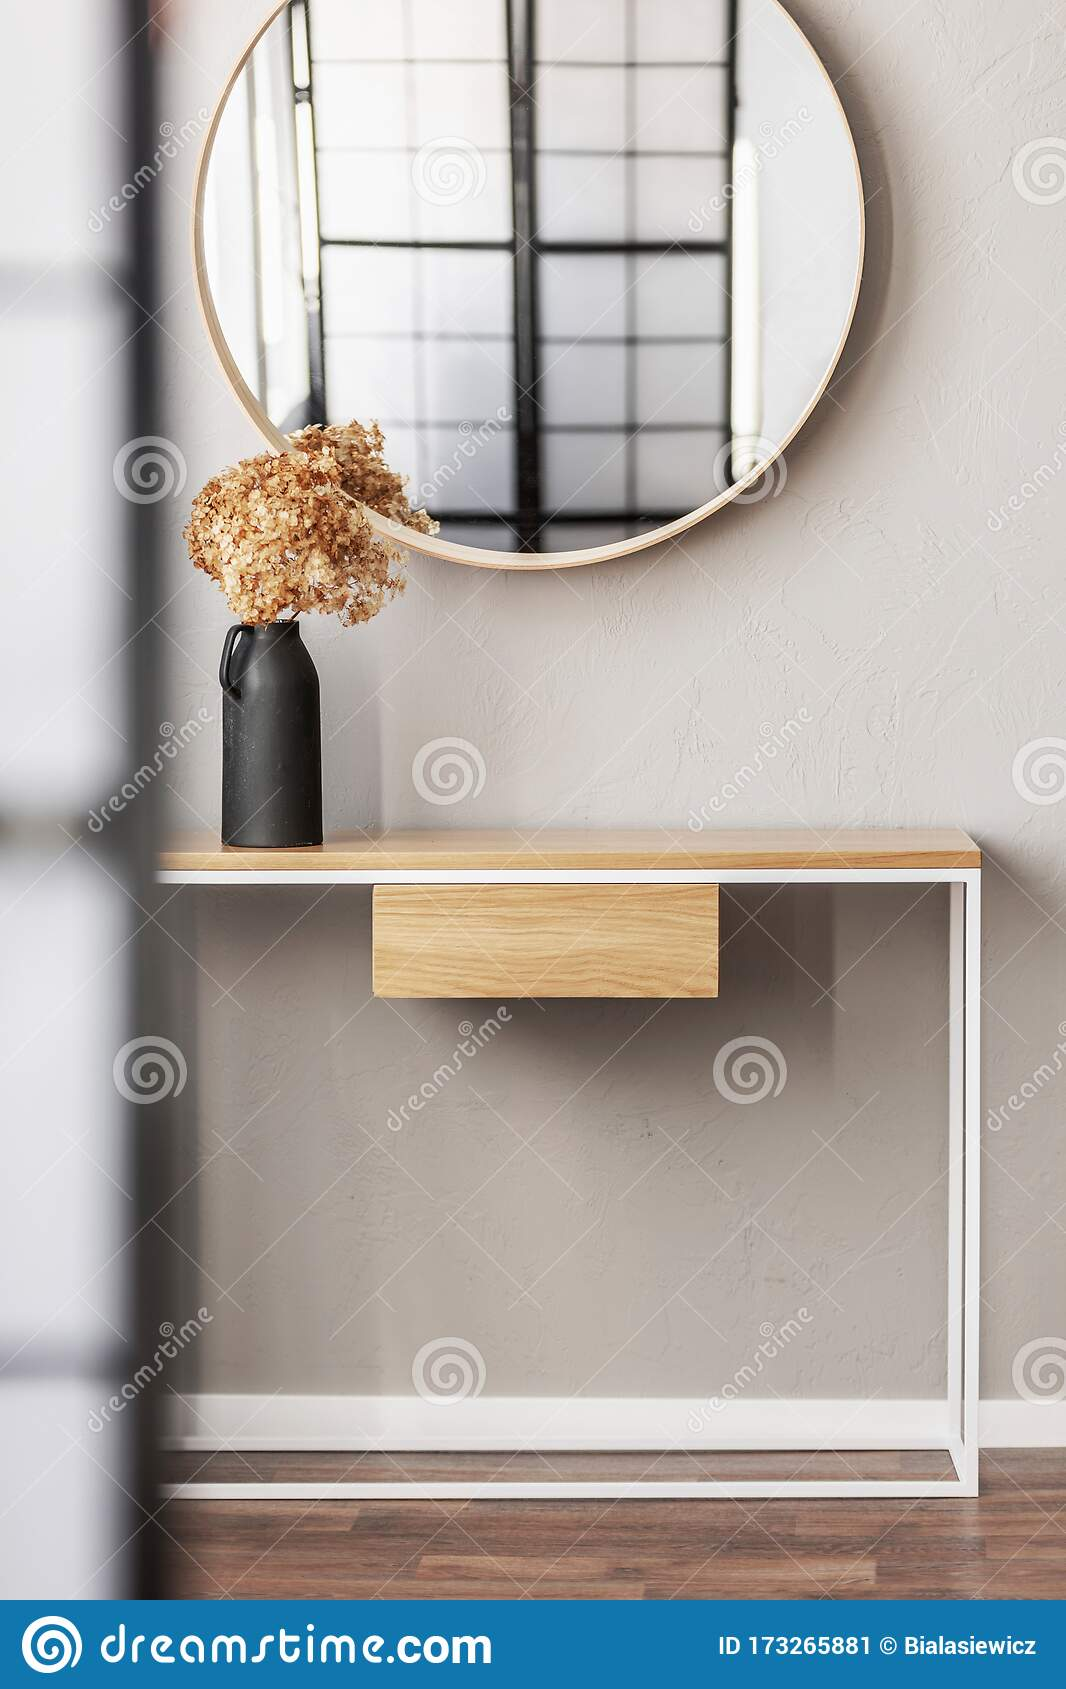 Round Mirror In Wooden Frame Above Fancy Console Table With Flowers In Vase In Trendy Bedroom Interior With Beige Vase Stock Image Image Of Tasteful Bright 173265881